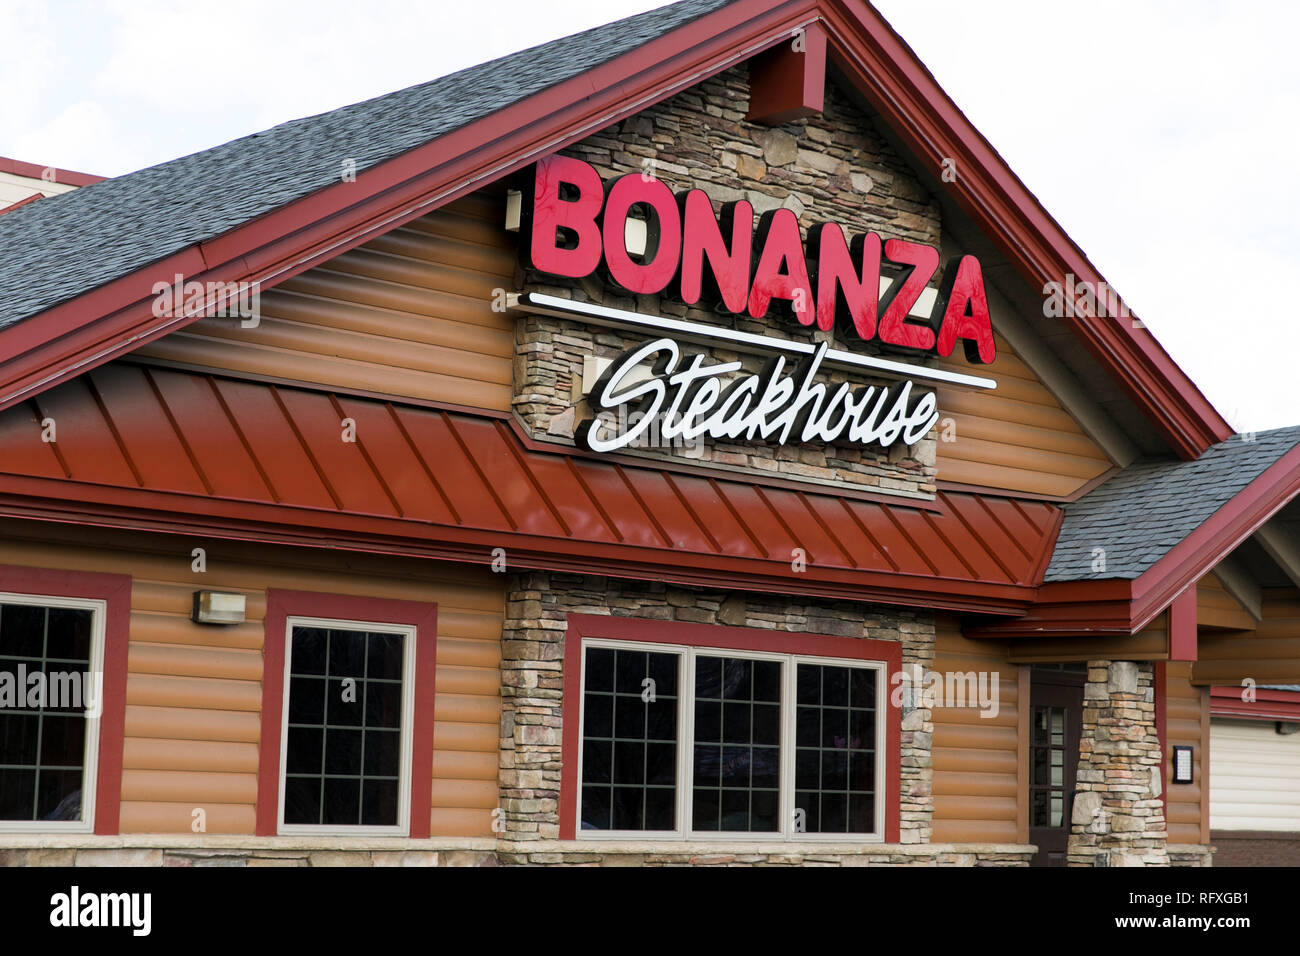 A logo sign outside of a Bonanza Steakhouse restaurant location in Chambersburg, Pennsylvania on January 25, 2019. - Stock Image